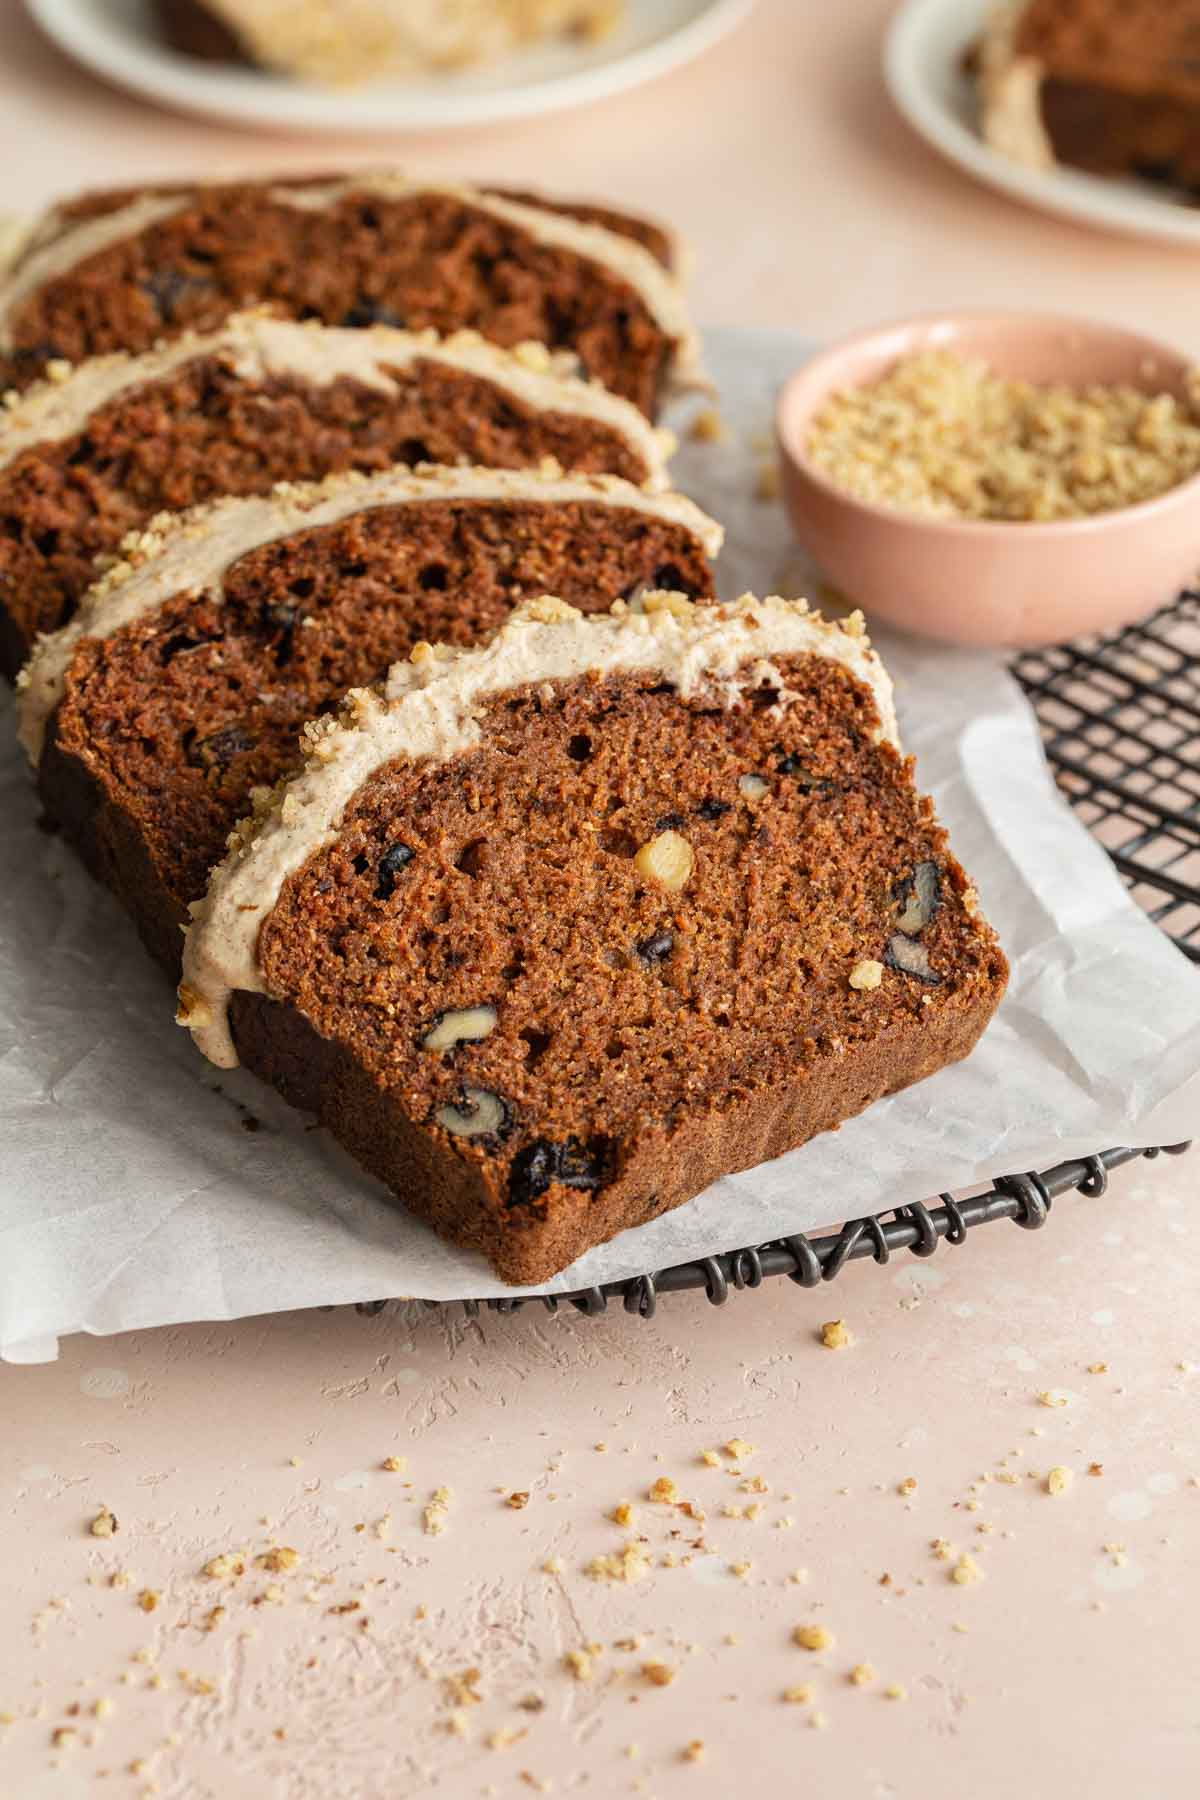 Slices of carrot cake loaf arranged on a sheet of parchment paper on a cooling rack.